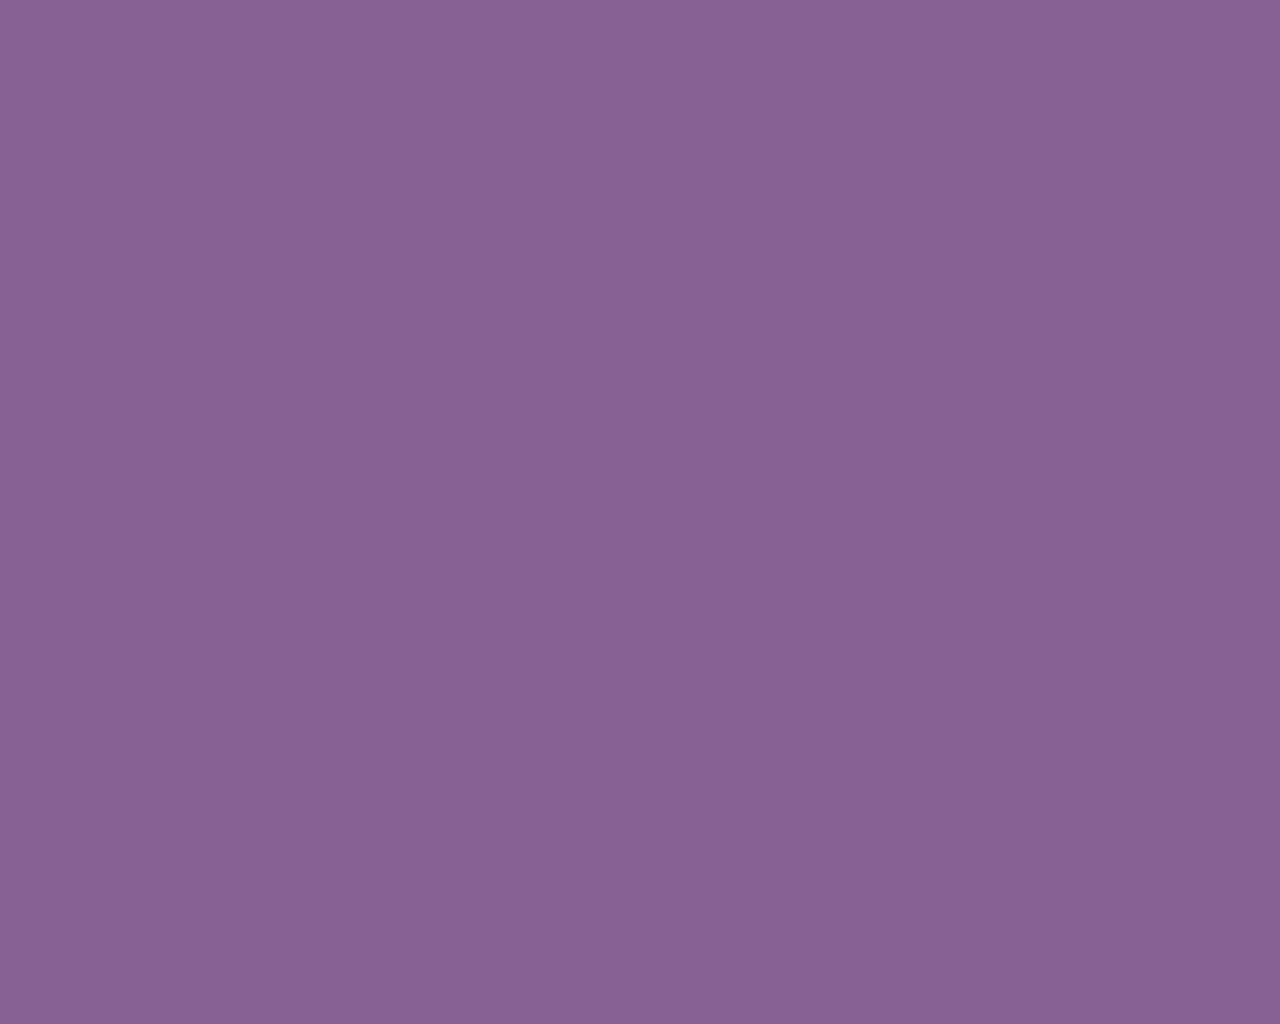 1280x1024 French Lilac Solid Color Background